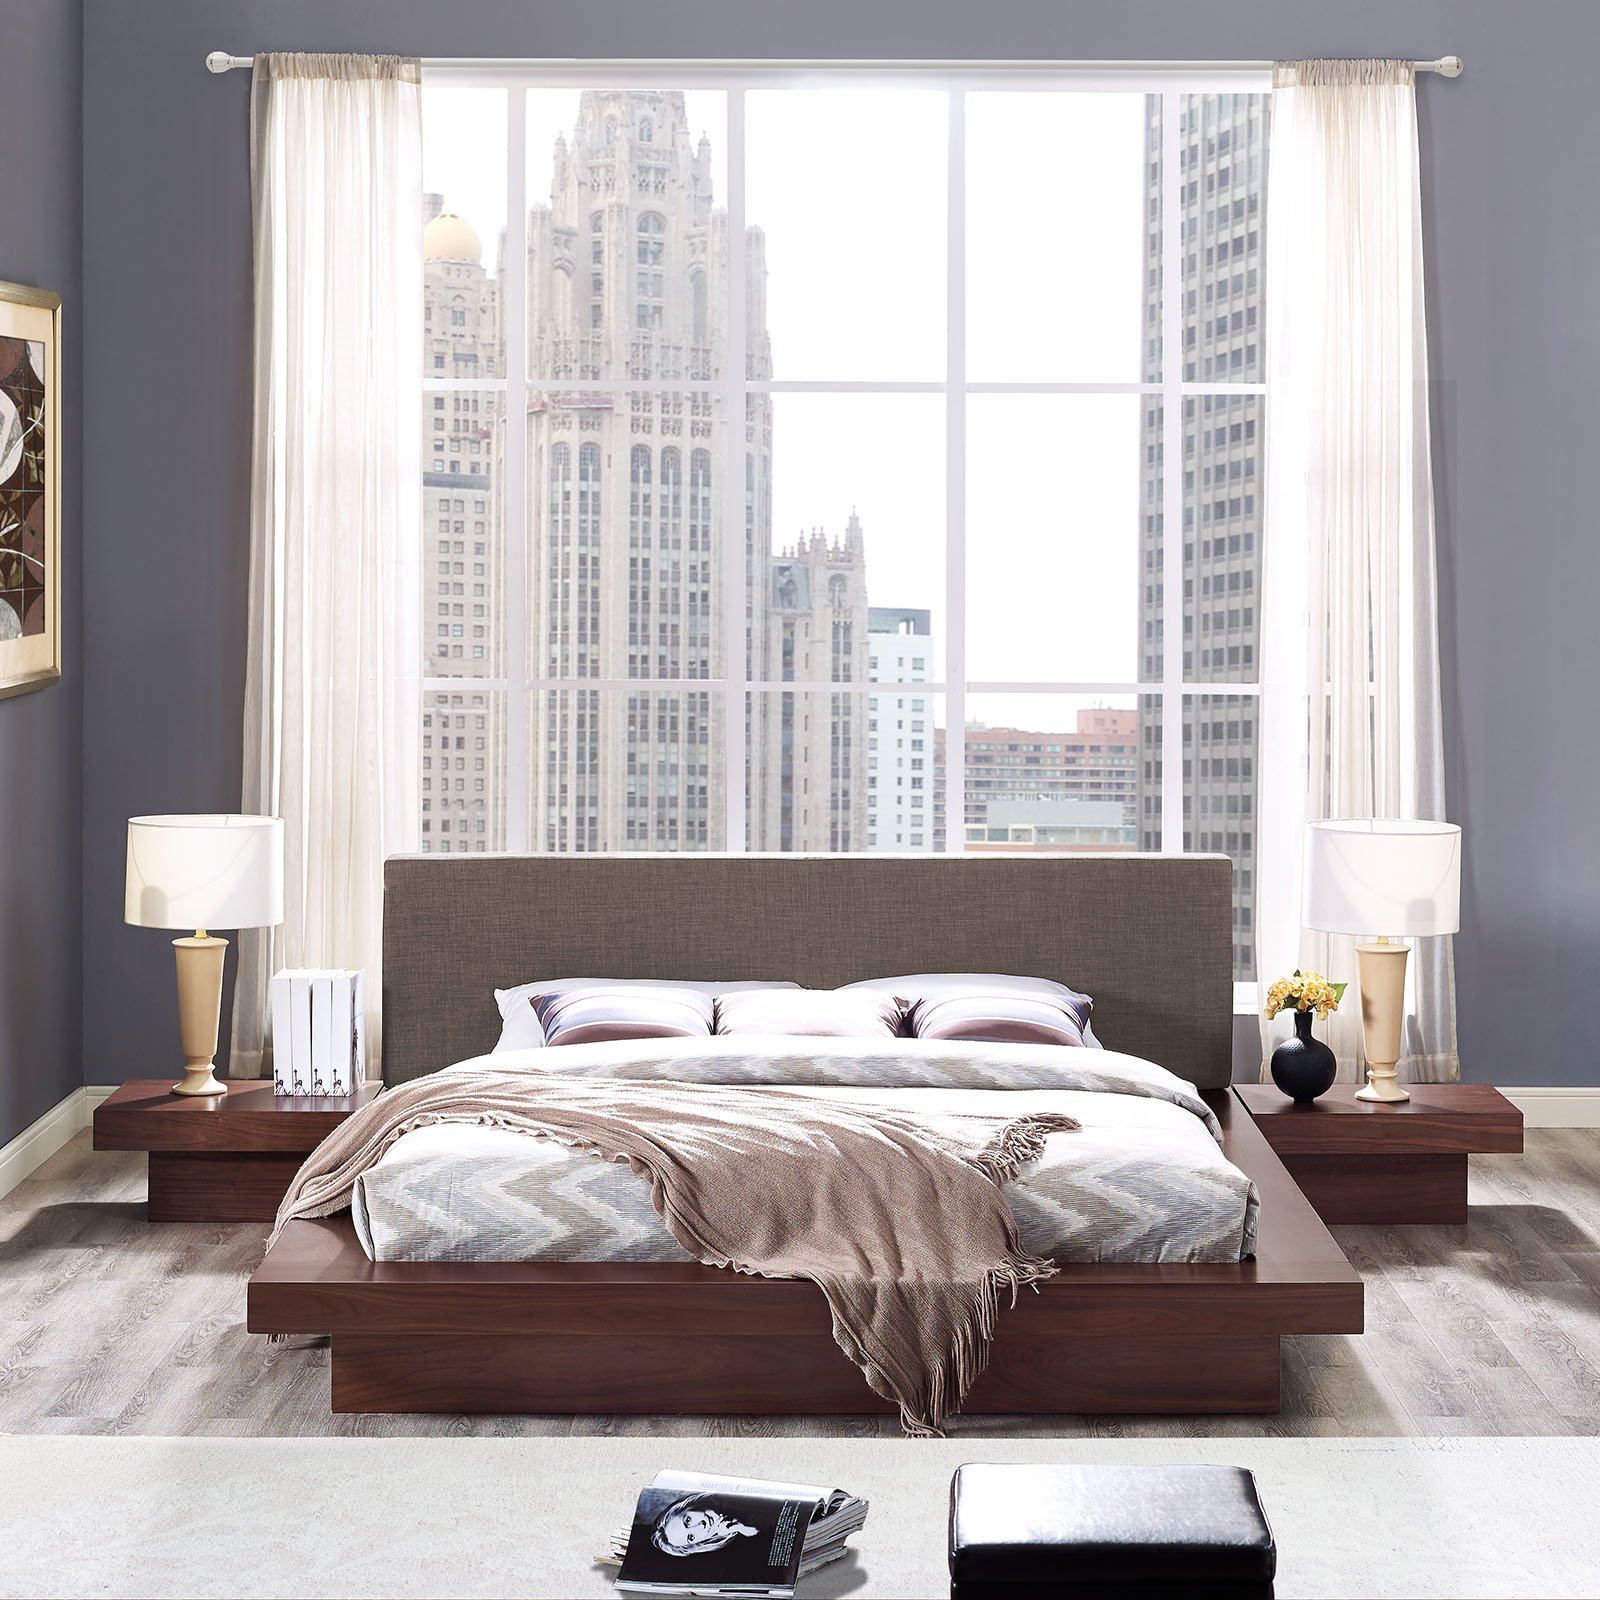 Modway Freja Upholstered Walnut Brown Modern Platform Bed with Wood Slat Support and Two Nightstands in Queen by Modway